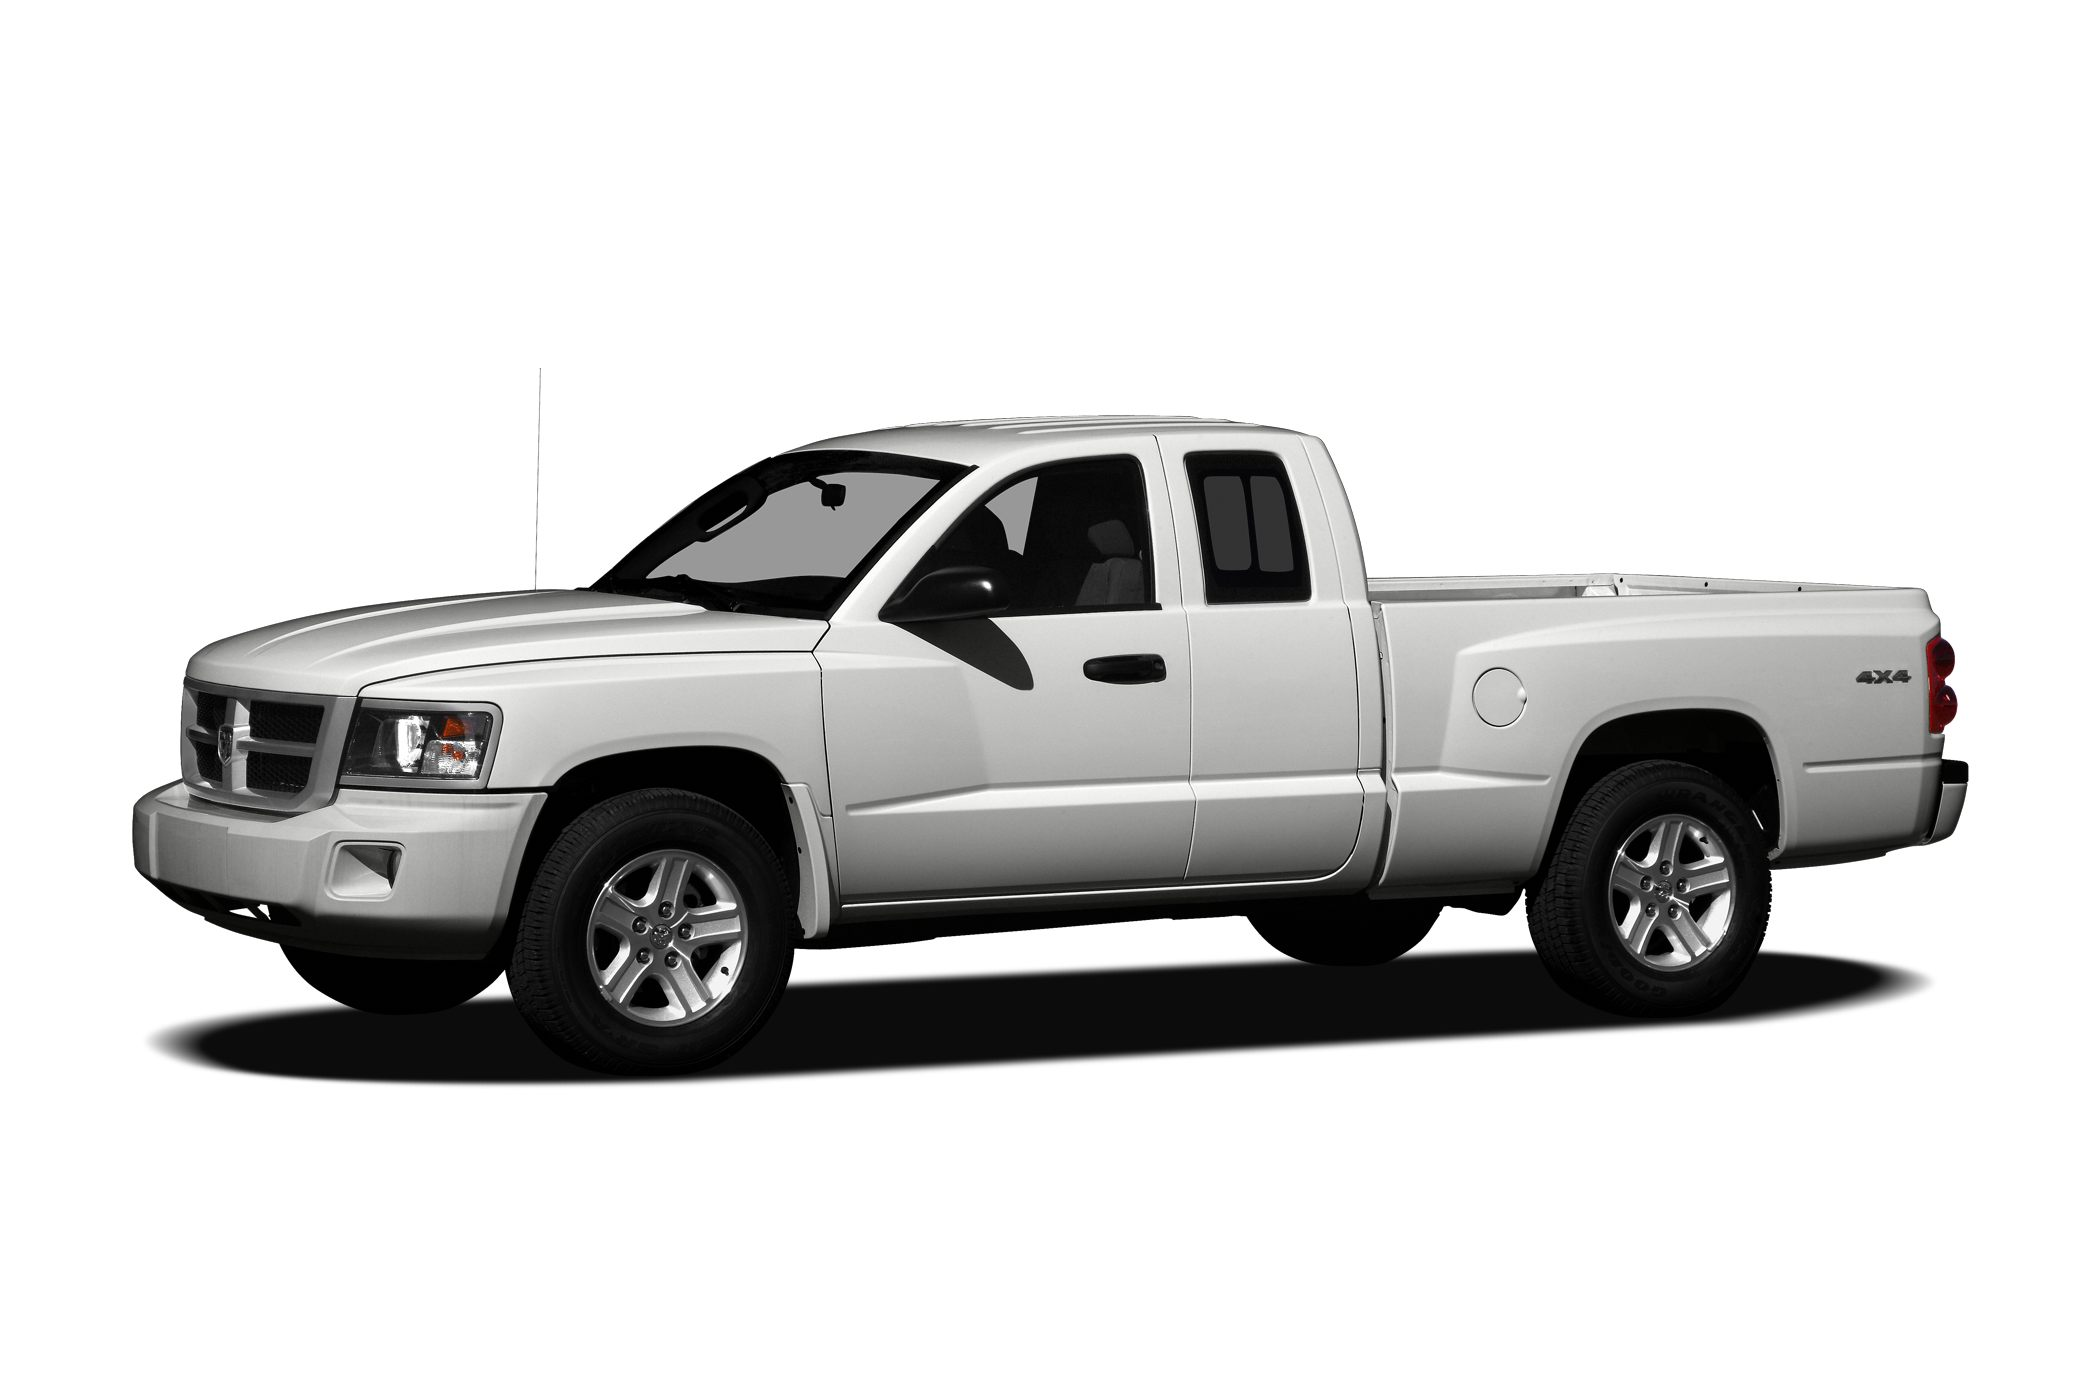 2011 Dodge Dakota Big HornLone Star BUY DIRECT-BUY BLUE BOOK THE BEST TRUCKS AT THE BEST PRICES